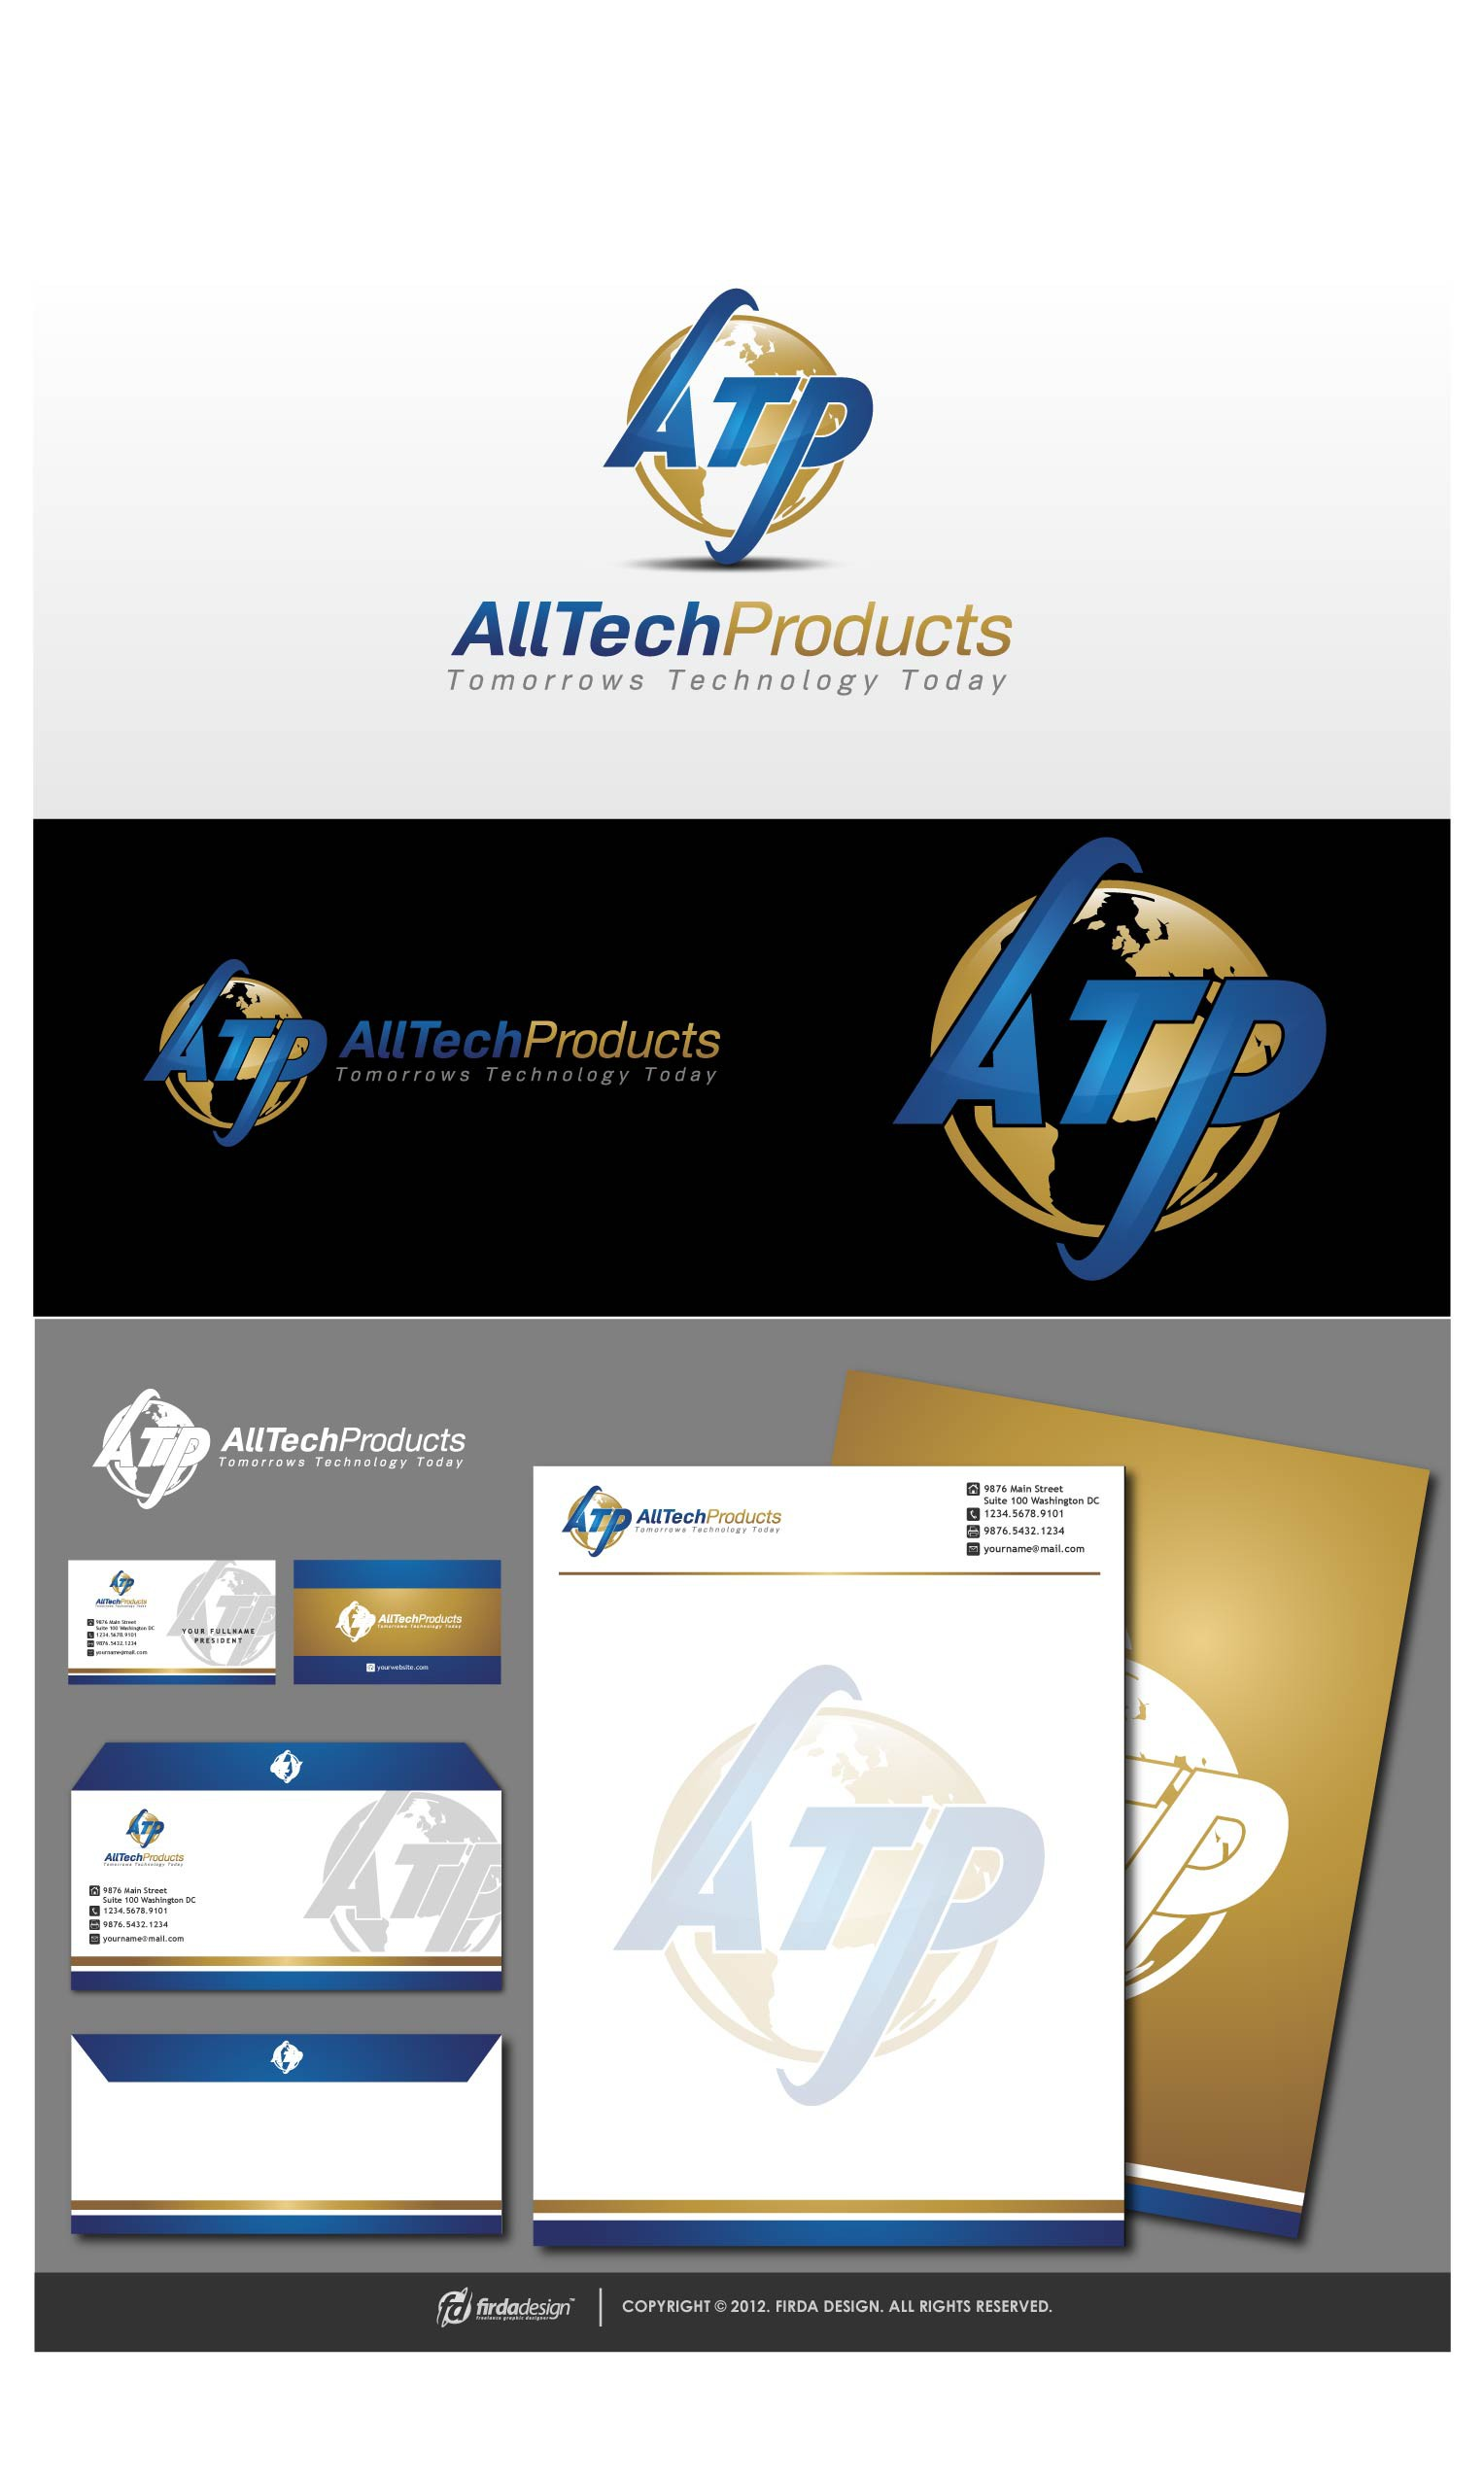 logo for ATP (All Tech Products)